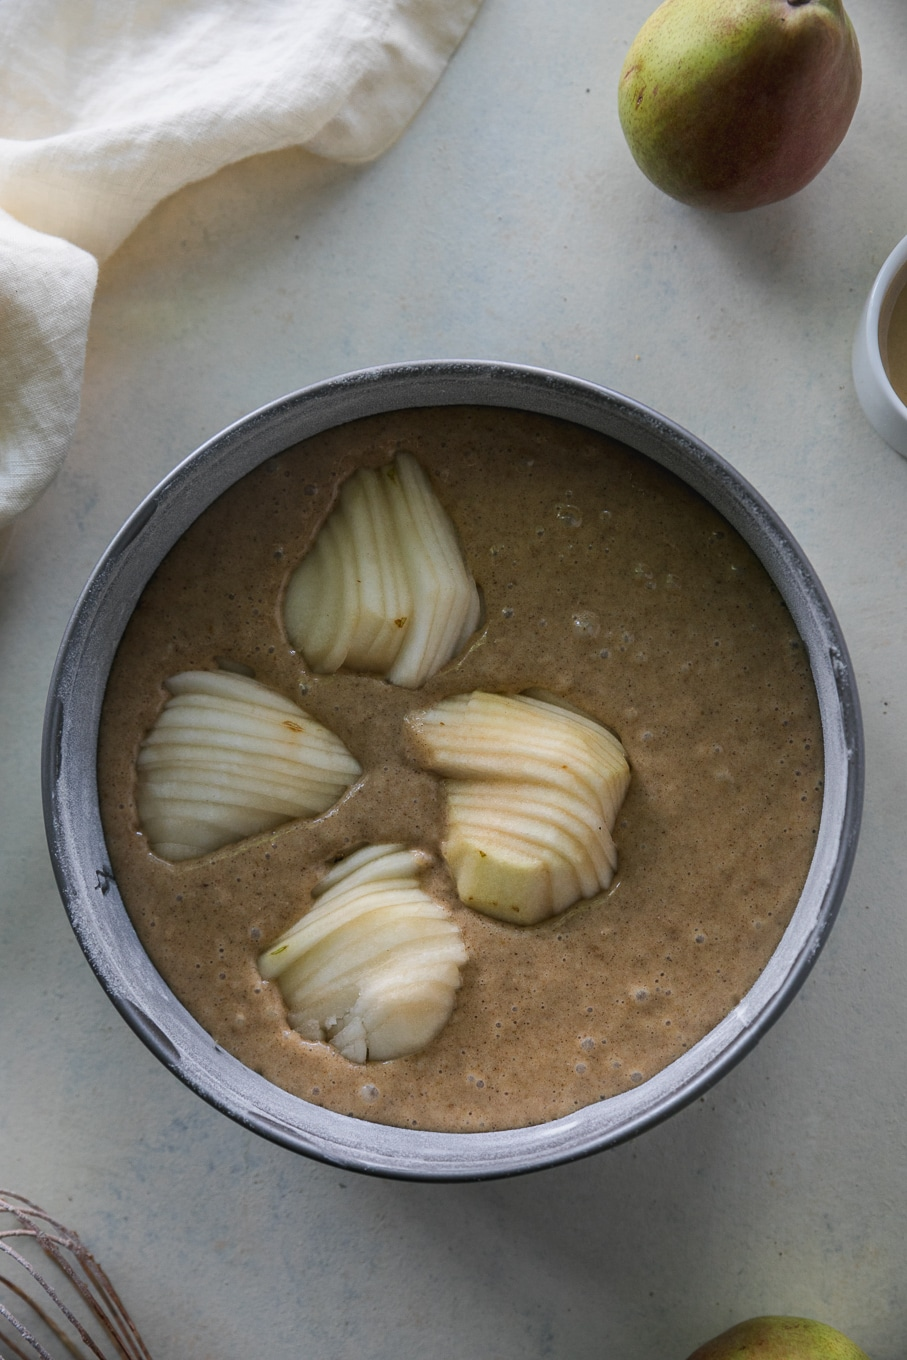 Overhead shot of a springform pan filled with batter and sliced pears on top